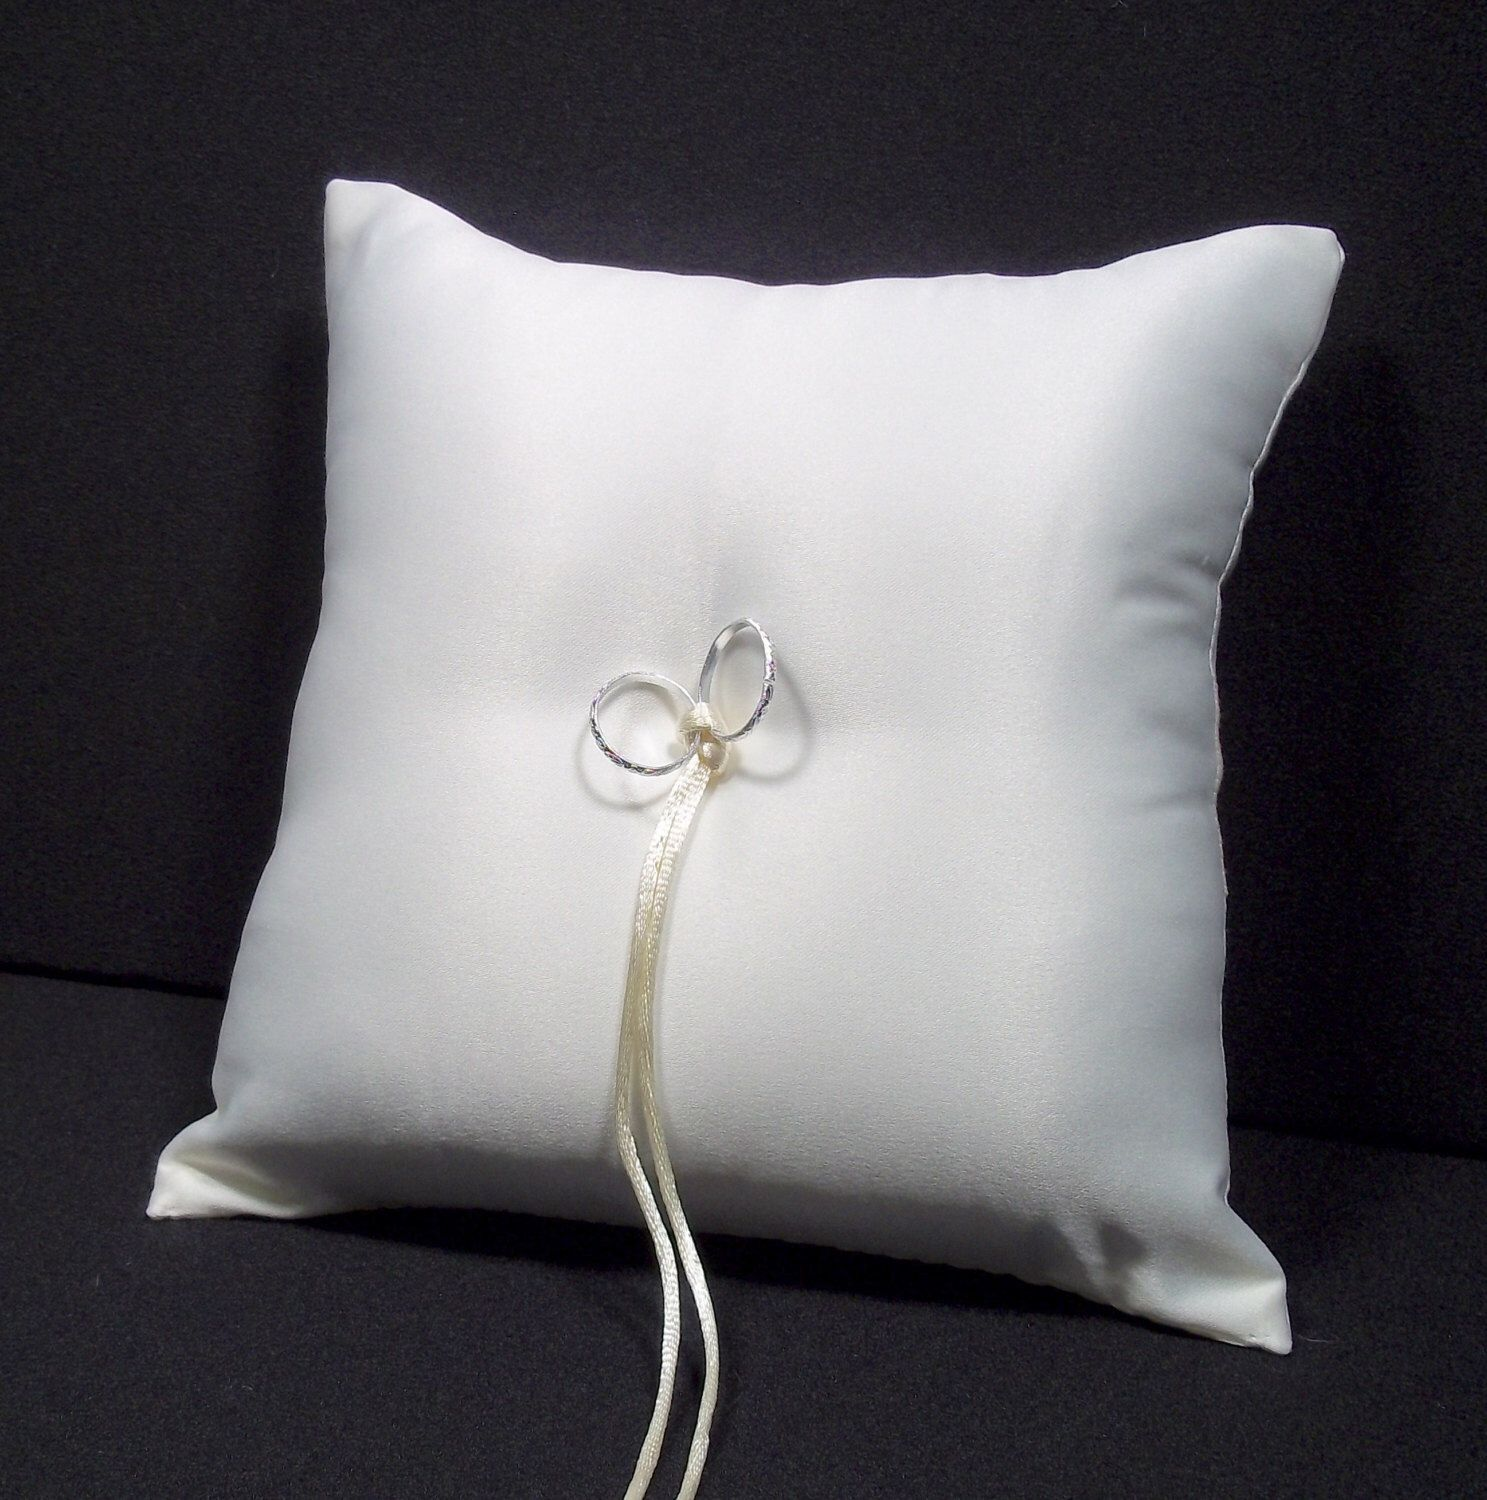 DIY White or Ivory Wedding Ring Bearer Pillow DECORATE YOURSELF! by Jessicasdaydream on Etsy https://www.etsy.com/listing/169179176/diy-white-or-ivory-wedding-ring-bearer